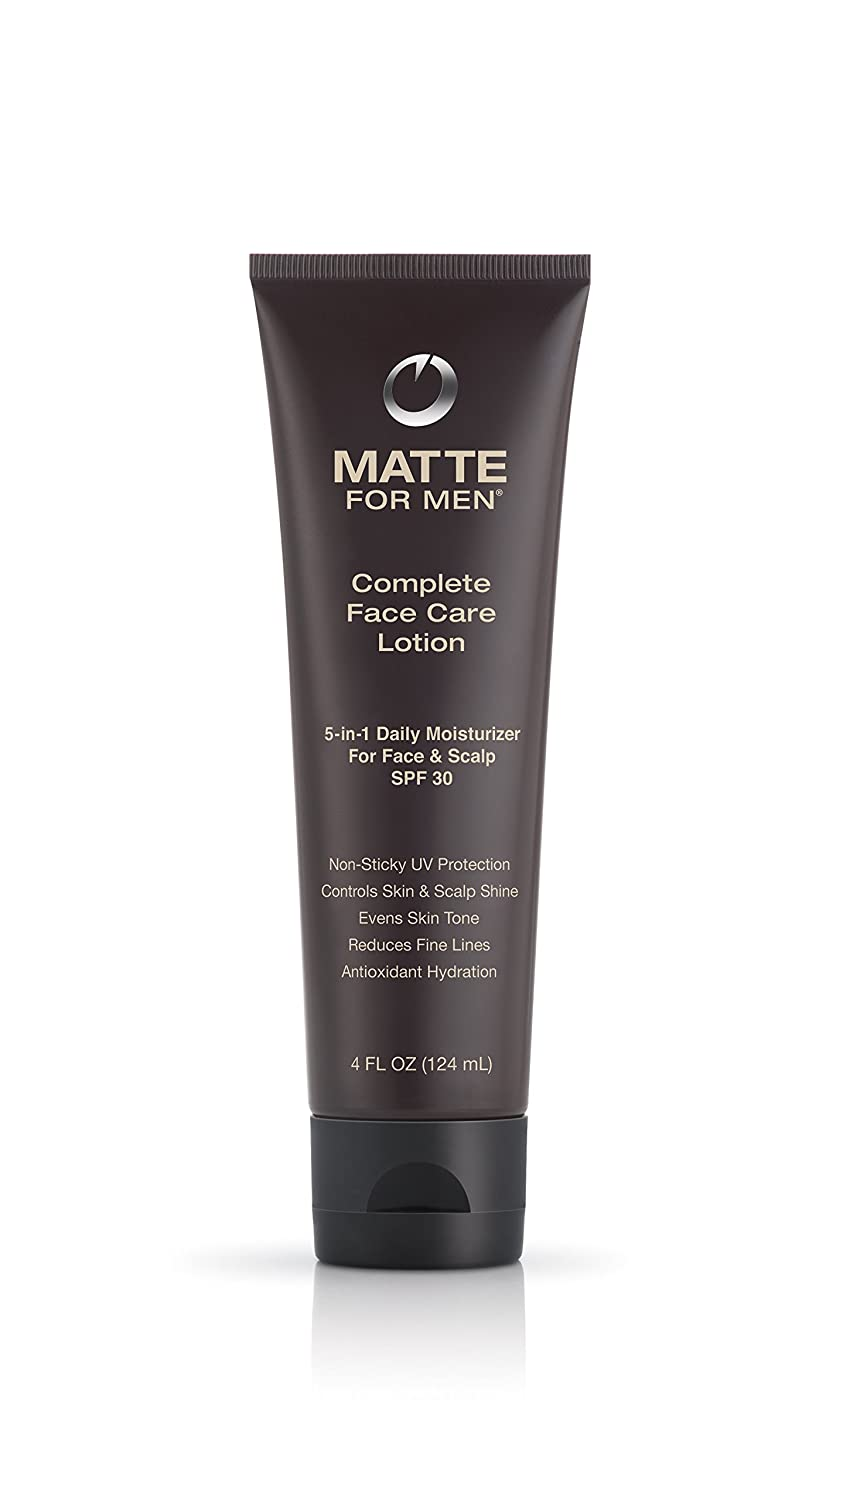 Matte For Men Complete Face Care Lotion with SPF 30, 4.0 Ounce